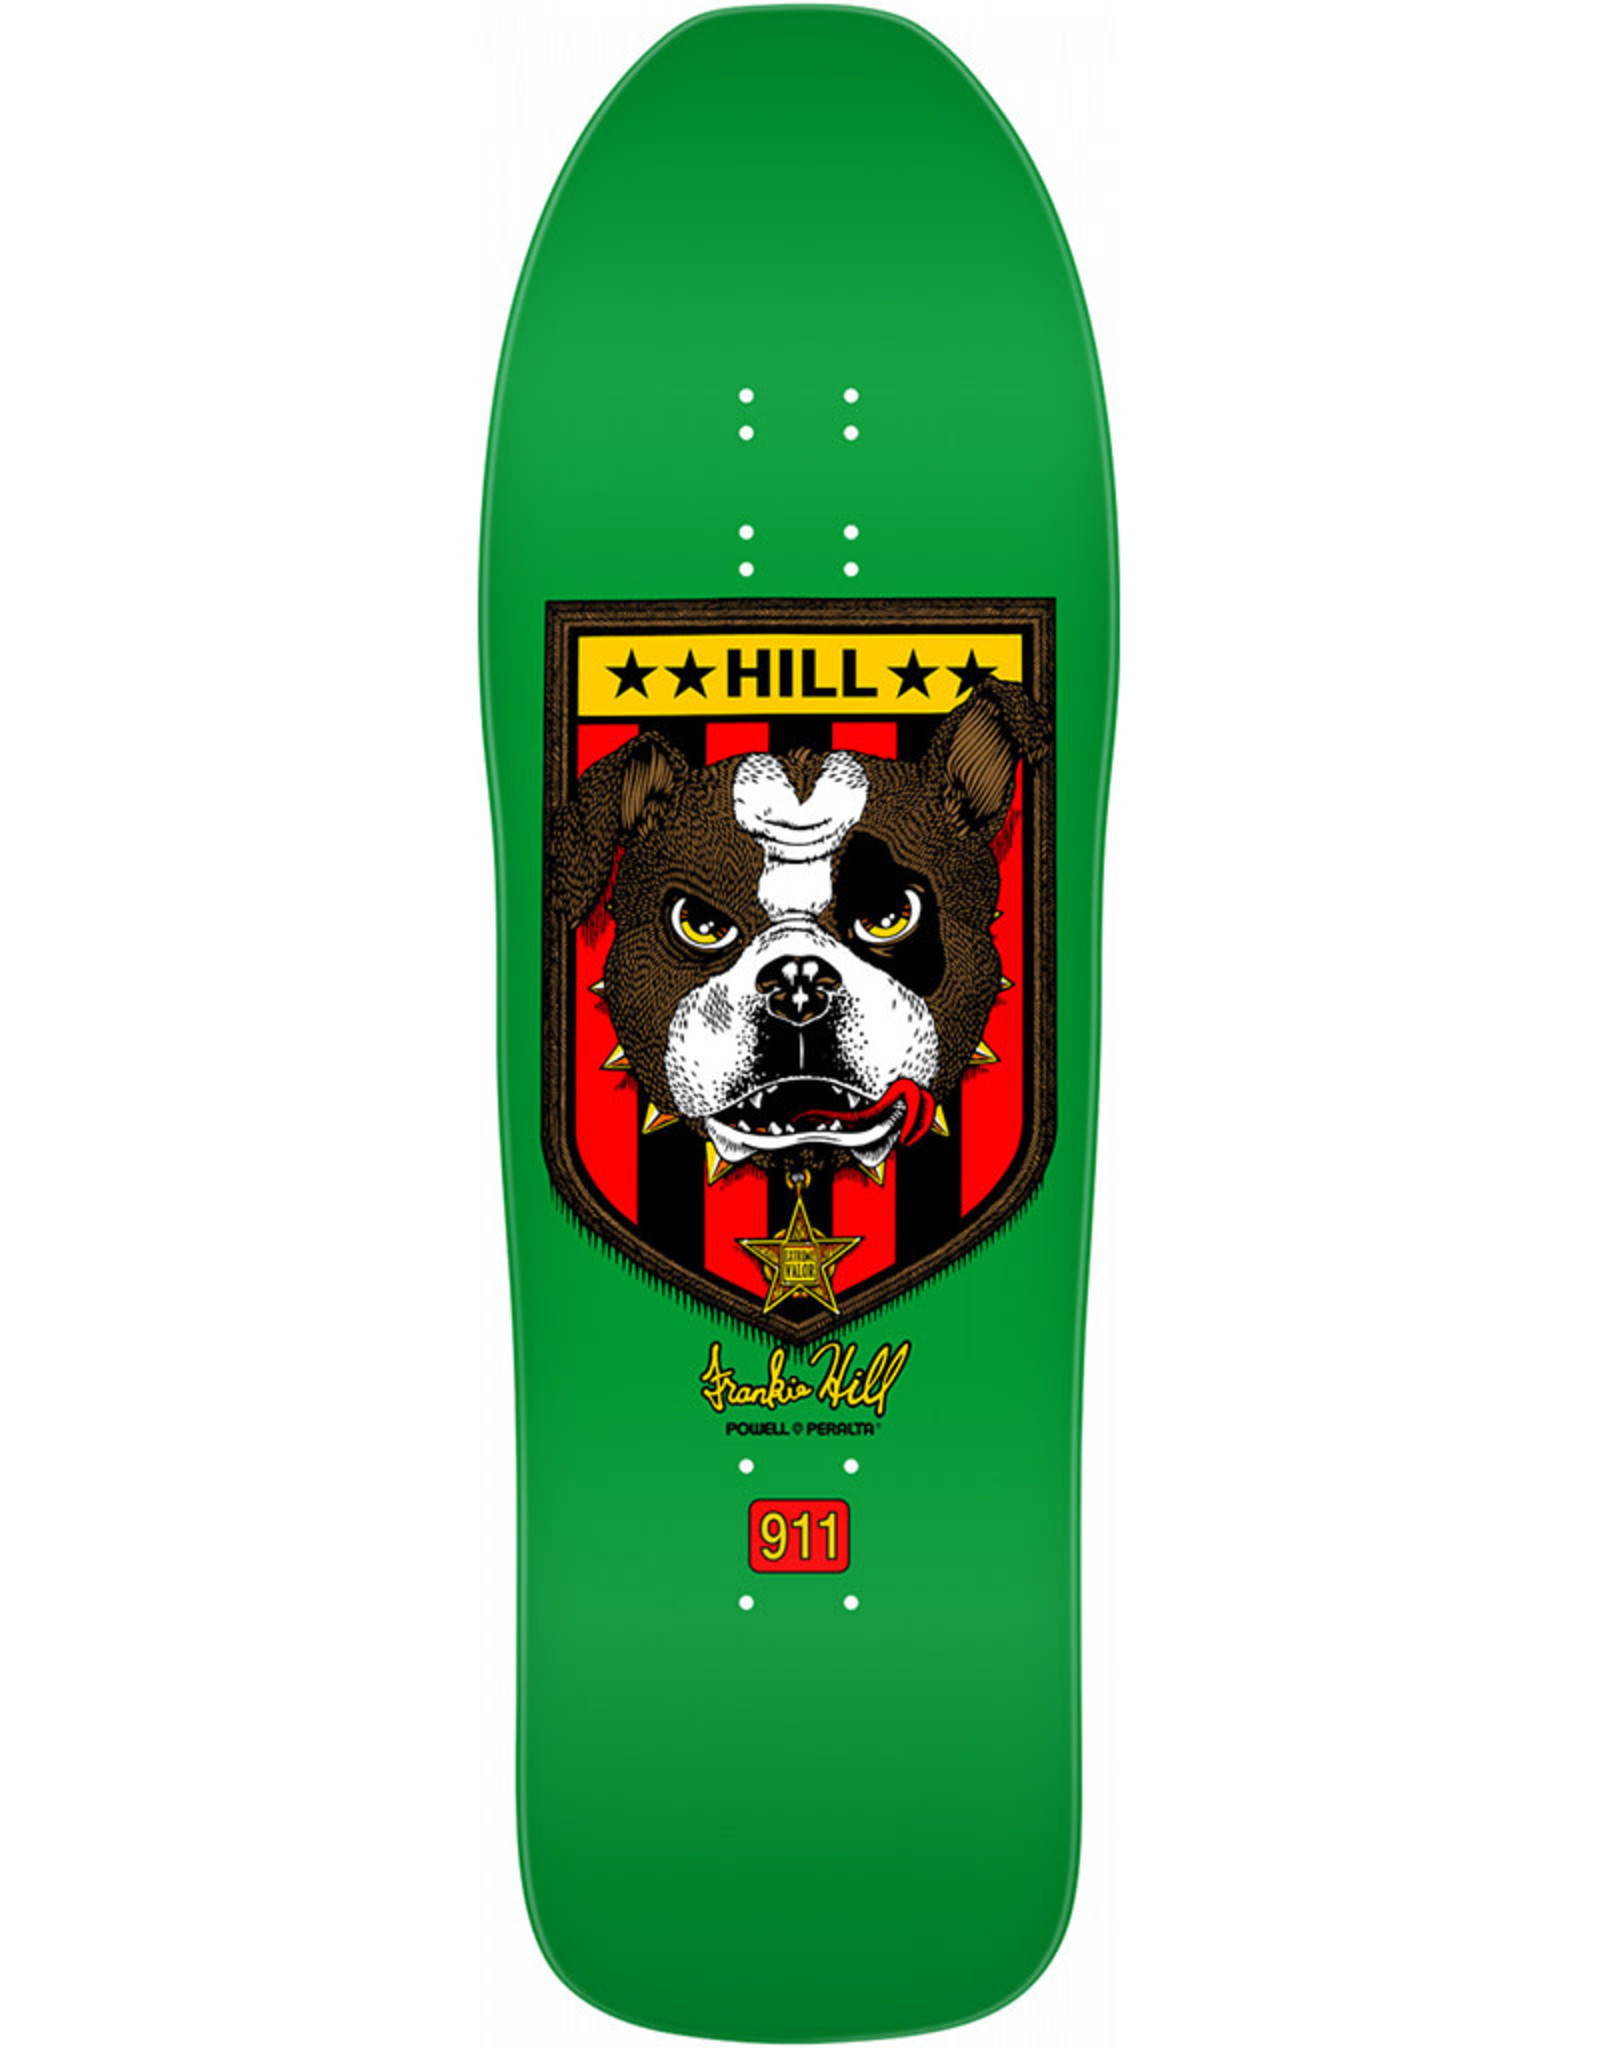 Powell Peralta Powell Peralta Deck Frankie Hill Bull Dog 6 Re-Issue Green (10.0)